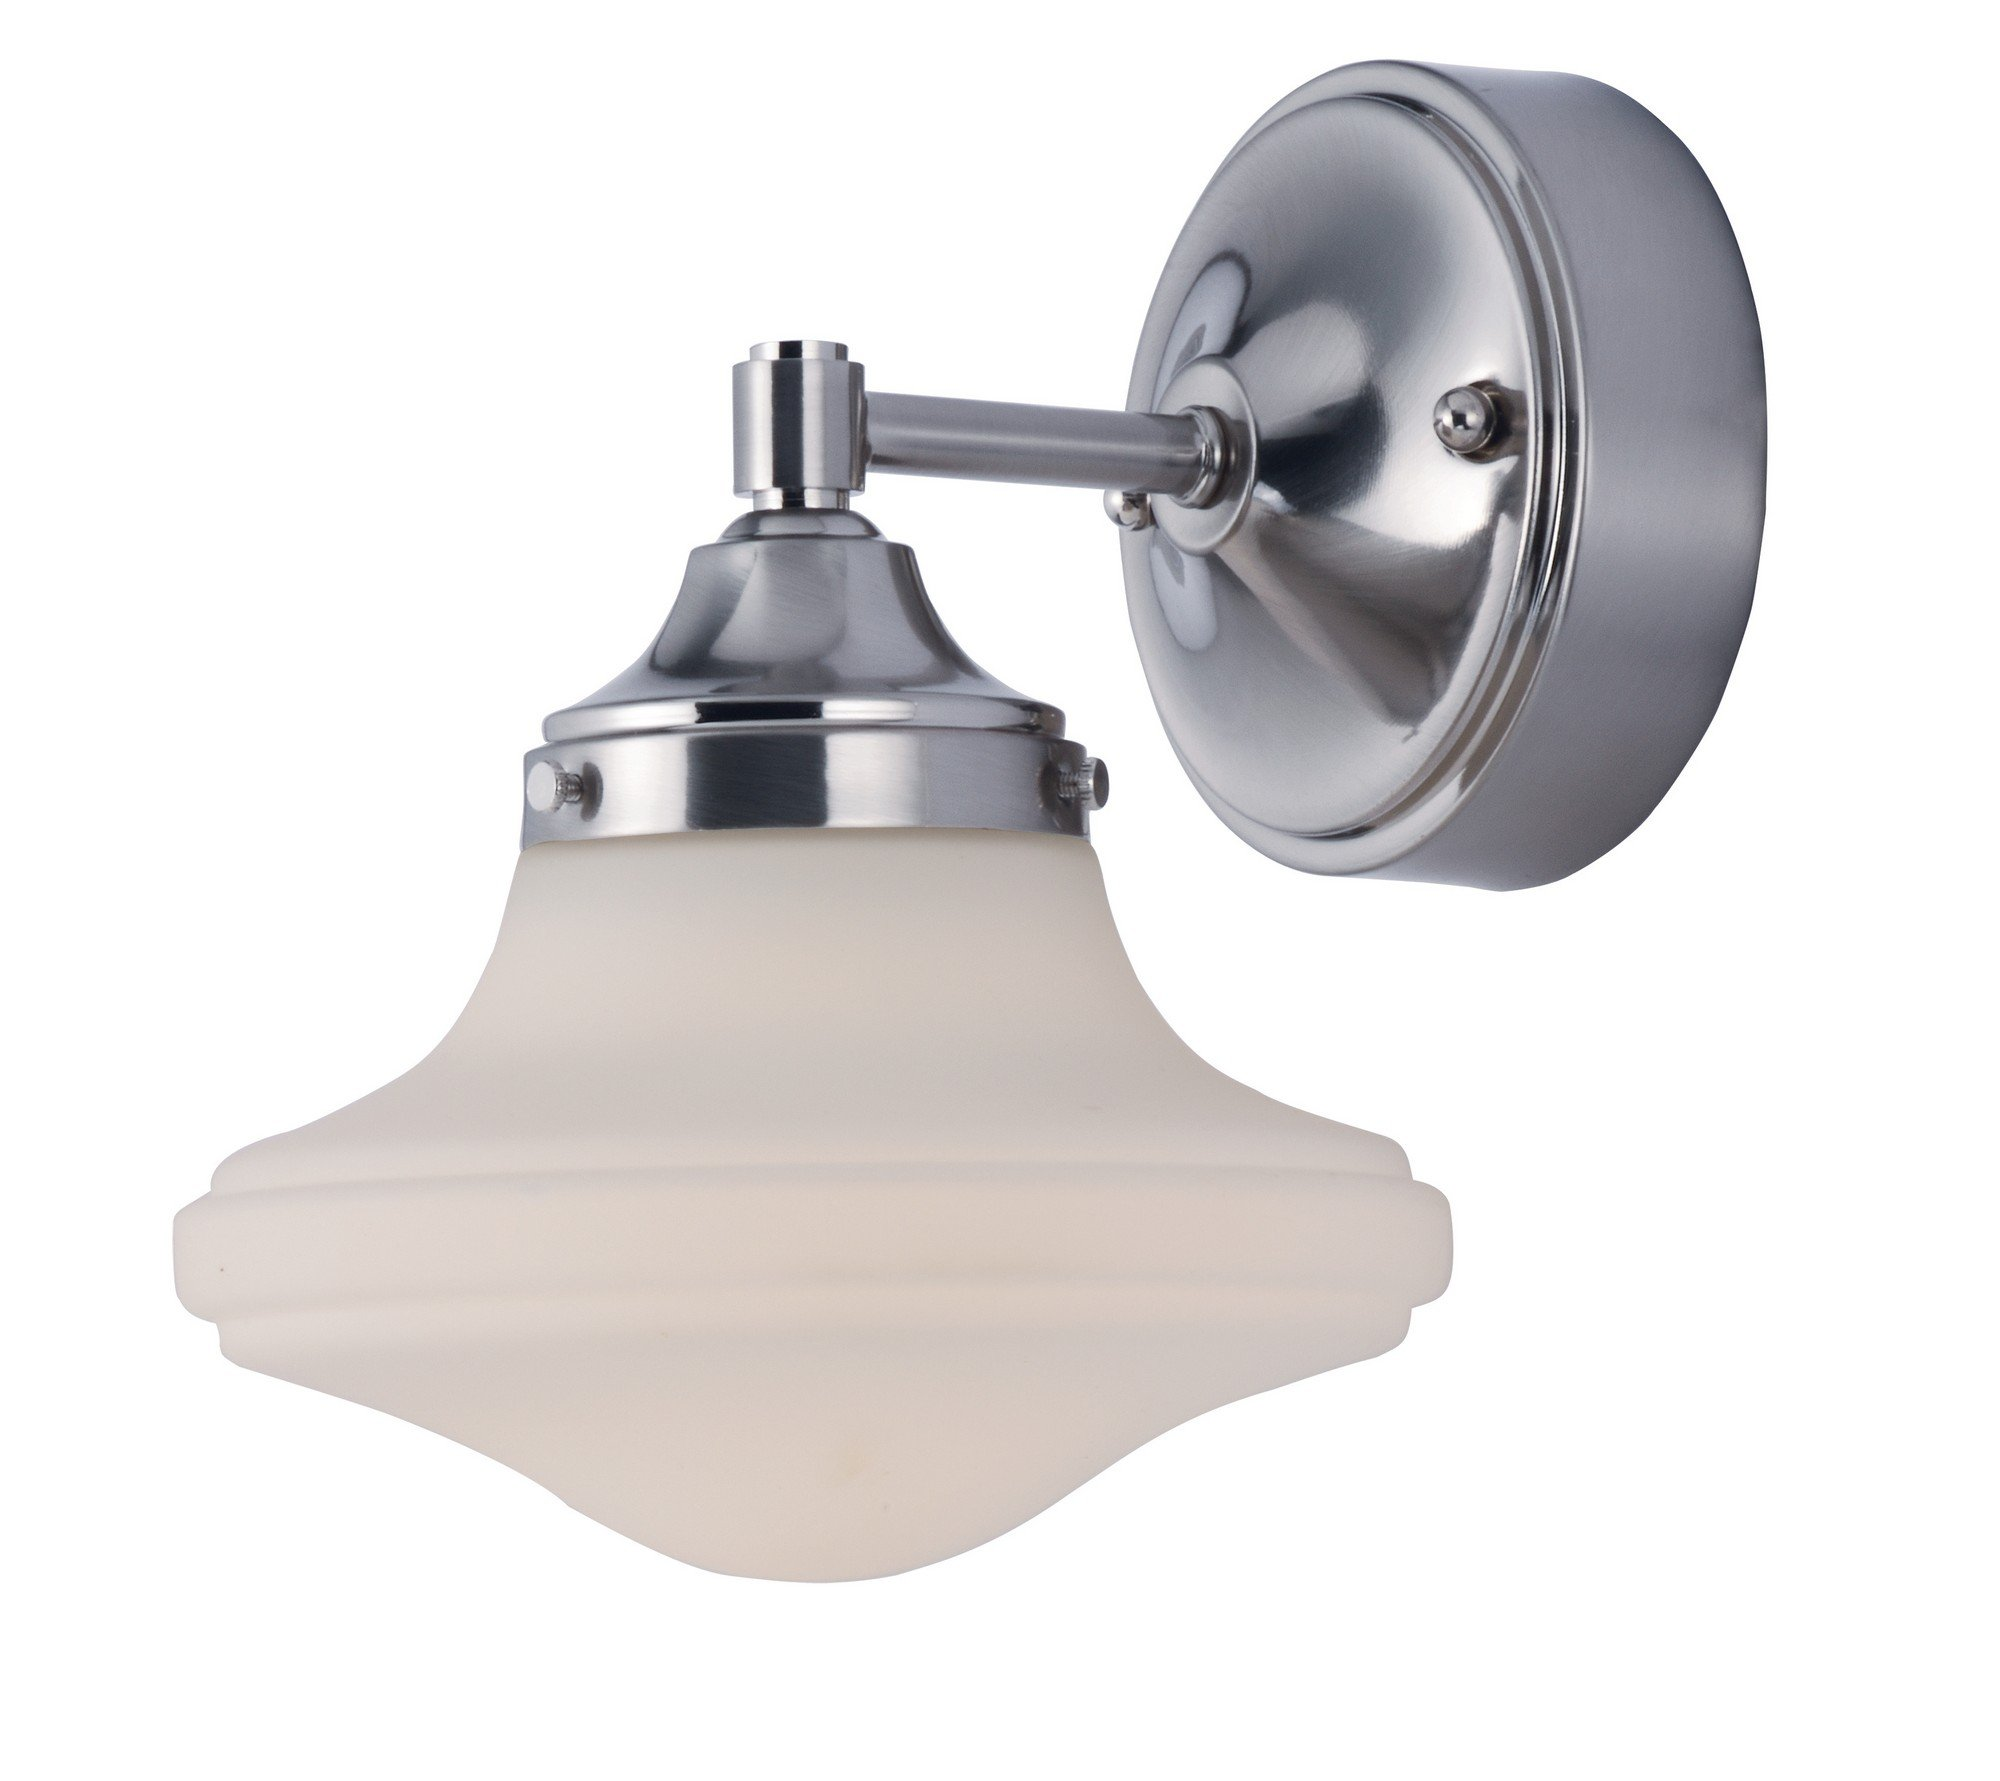 Maxim 30242SWSN New School LED Wall Sconce, Satin Nickel Finish, Satin White Glass, PCB LED Bulb , 0.16W Max., Dry Safety Rating, 2900-5000K Color Temp, Shade Material, Rated Lumens